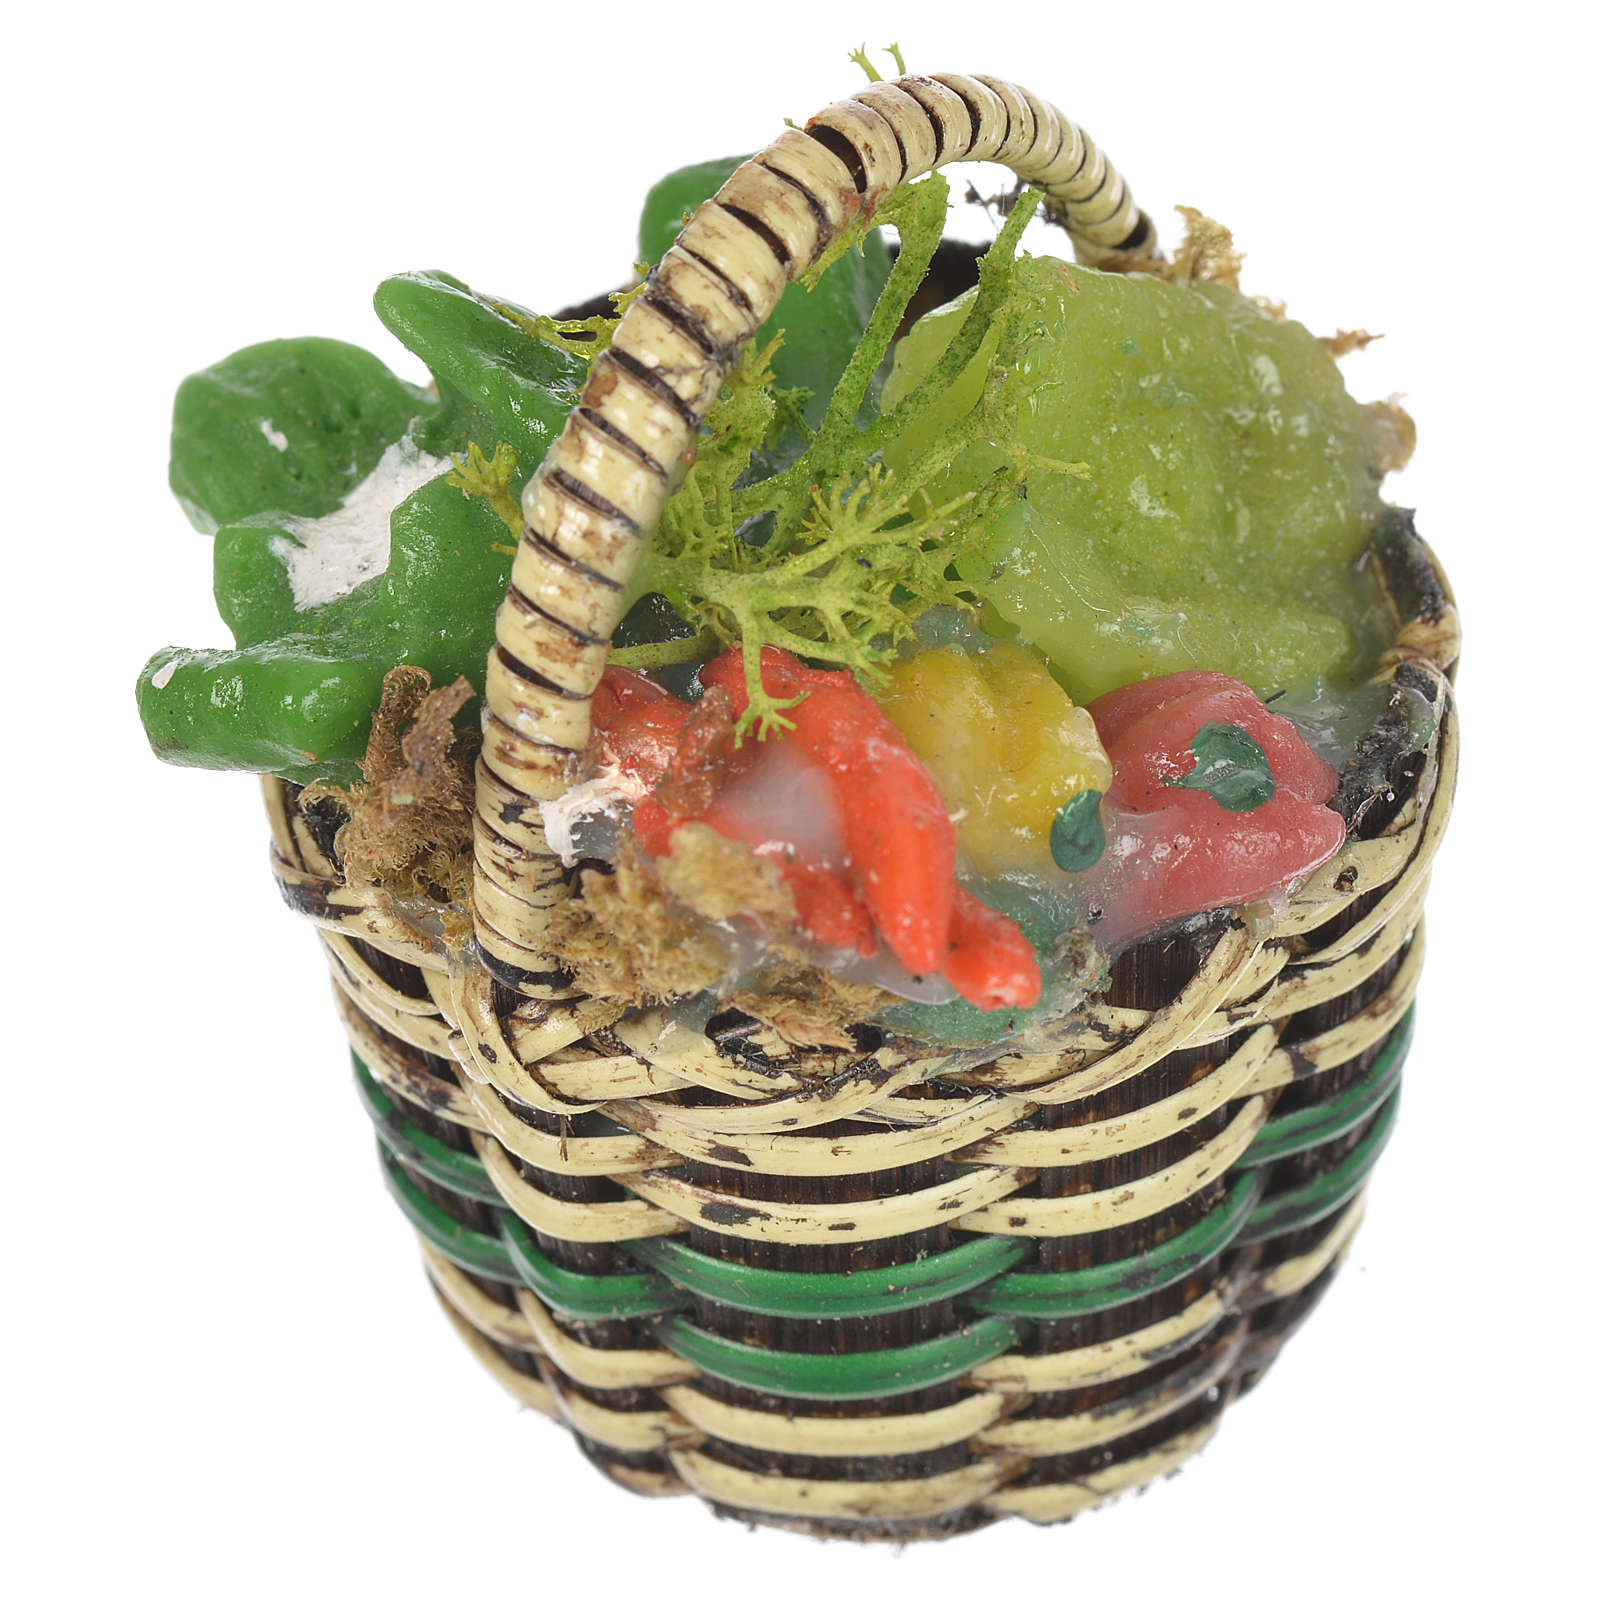 Accessory for nativities of 20-24cm, basket with vegetables in wax 4